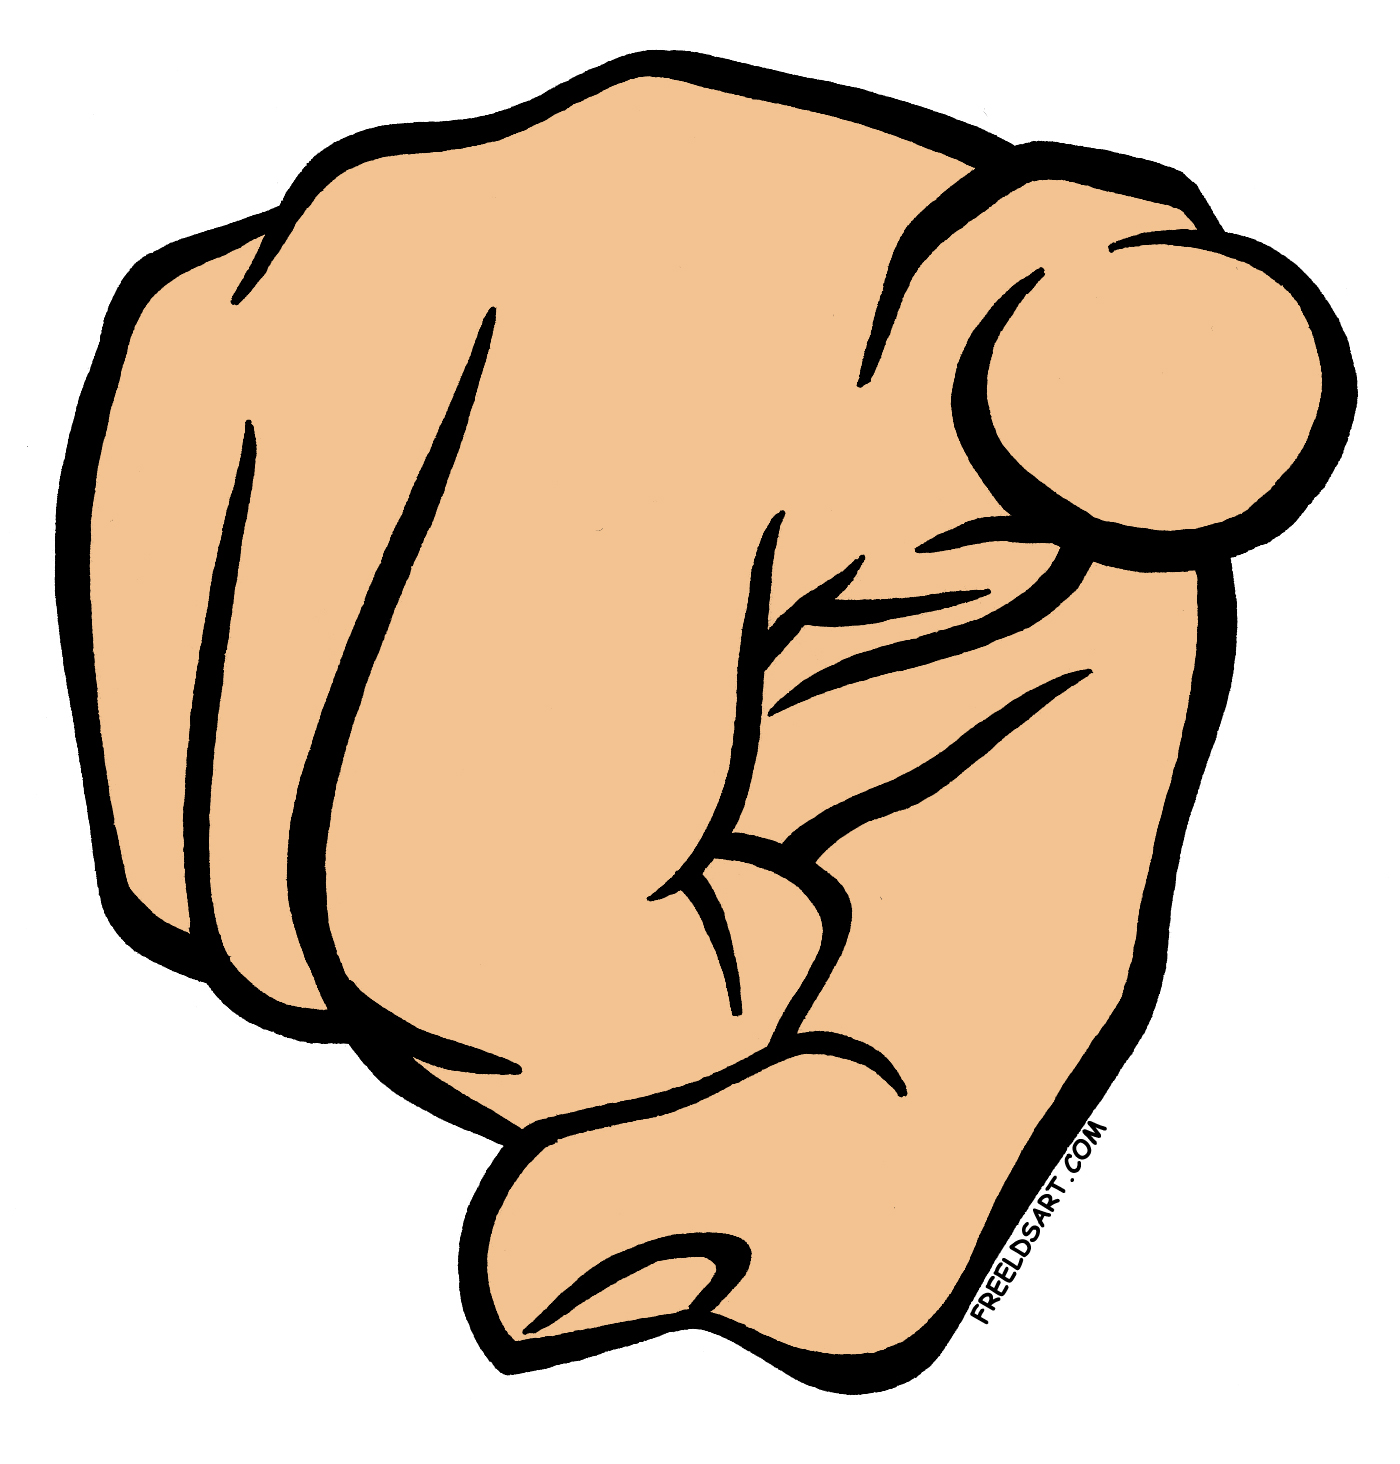 Clipart finger pointing at you image transparent library Free Pointing Finger Cliparts, Download Free Clip Art, Free Clip Art ... image transparent library